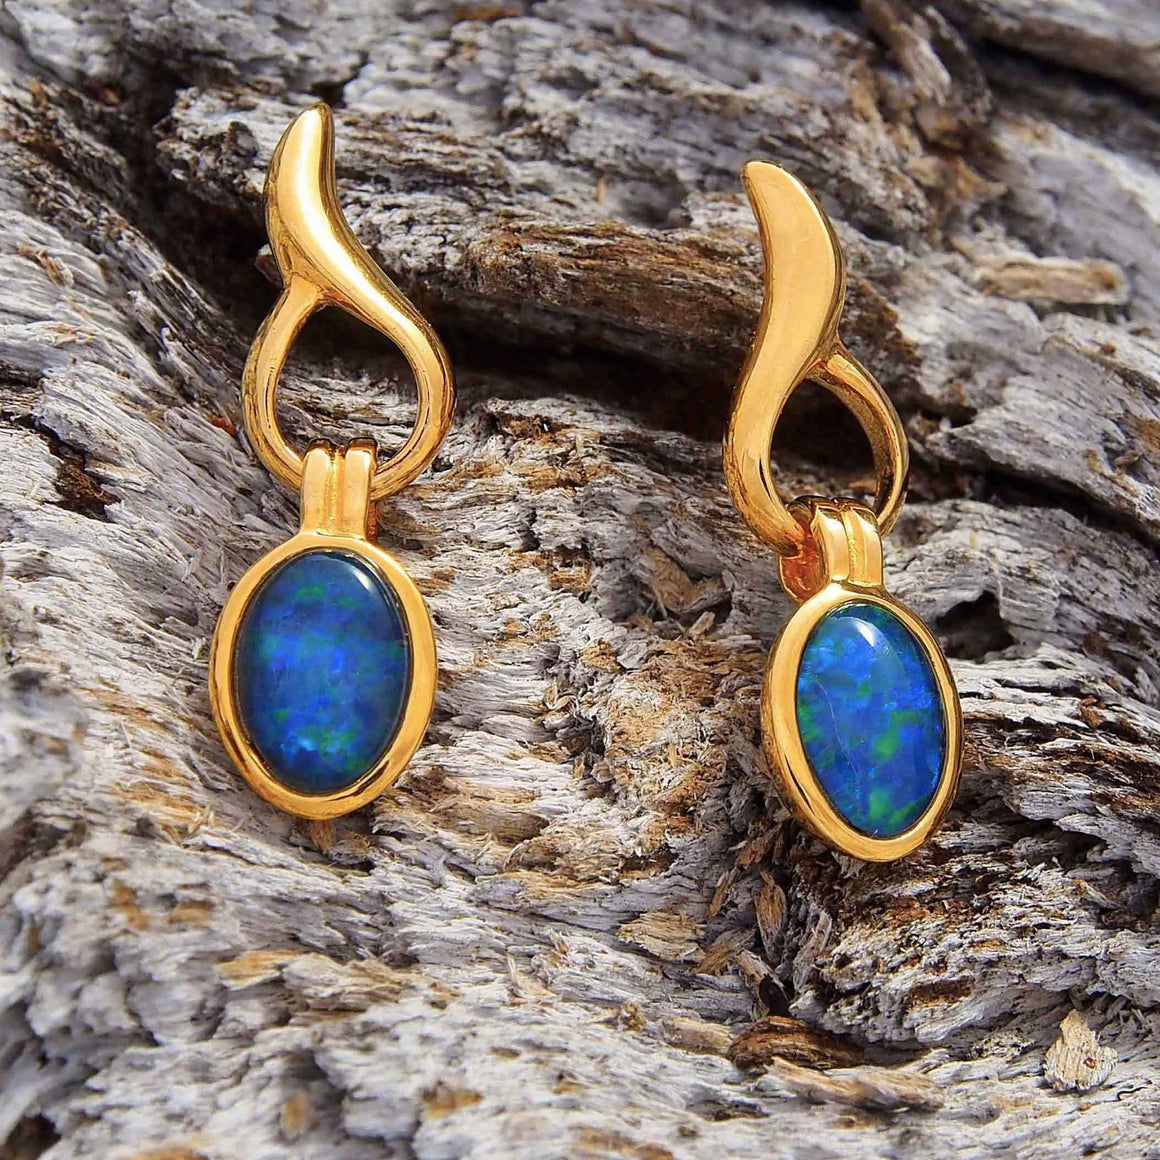 Gold plated sterling silver flame design drop-style stud earrings bezel set with blue and green oval triplet opals